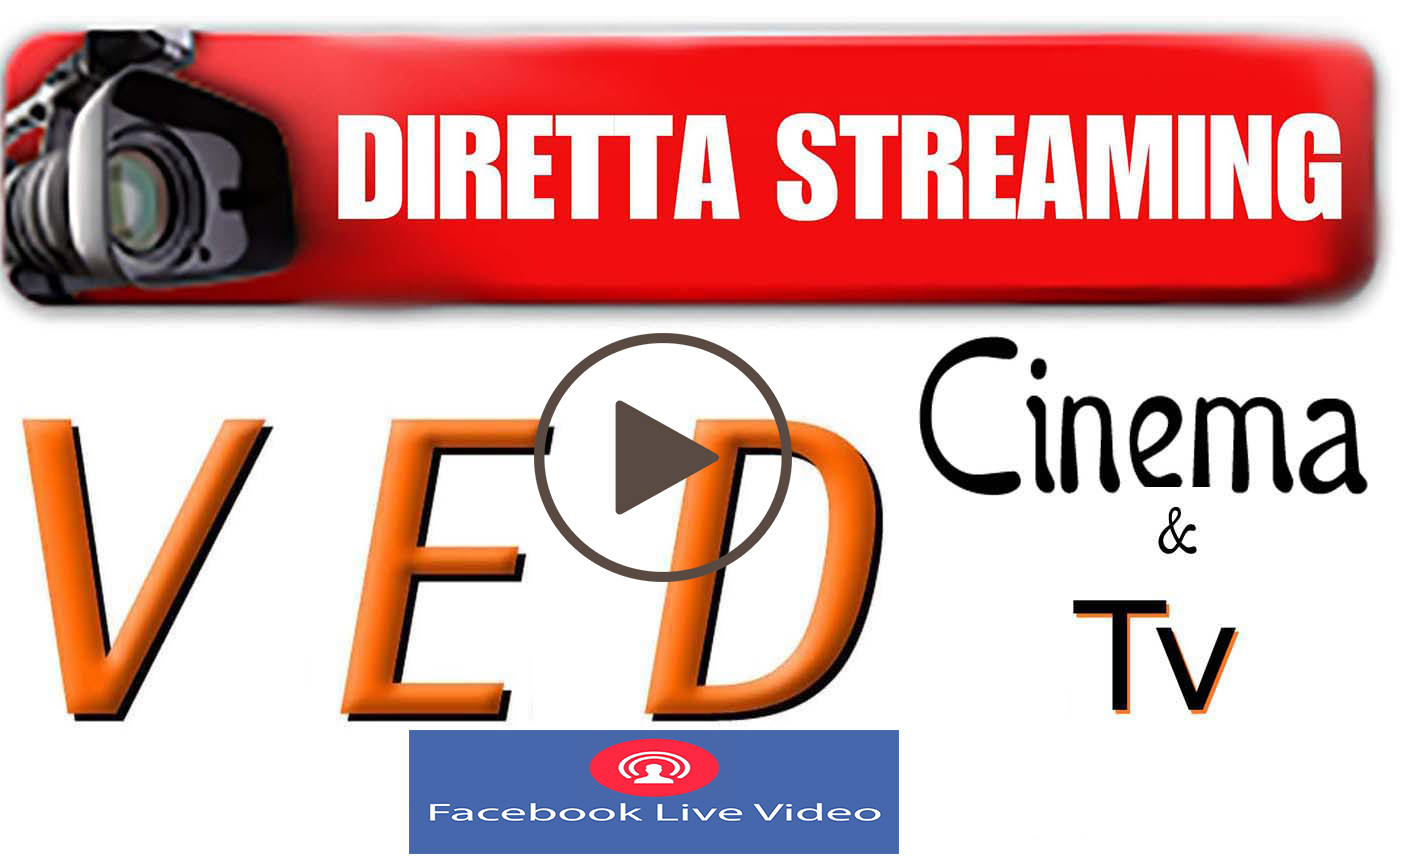 VEDTV Diretta streaming Facebook